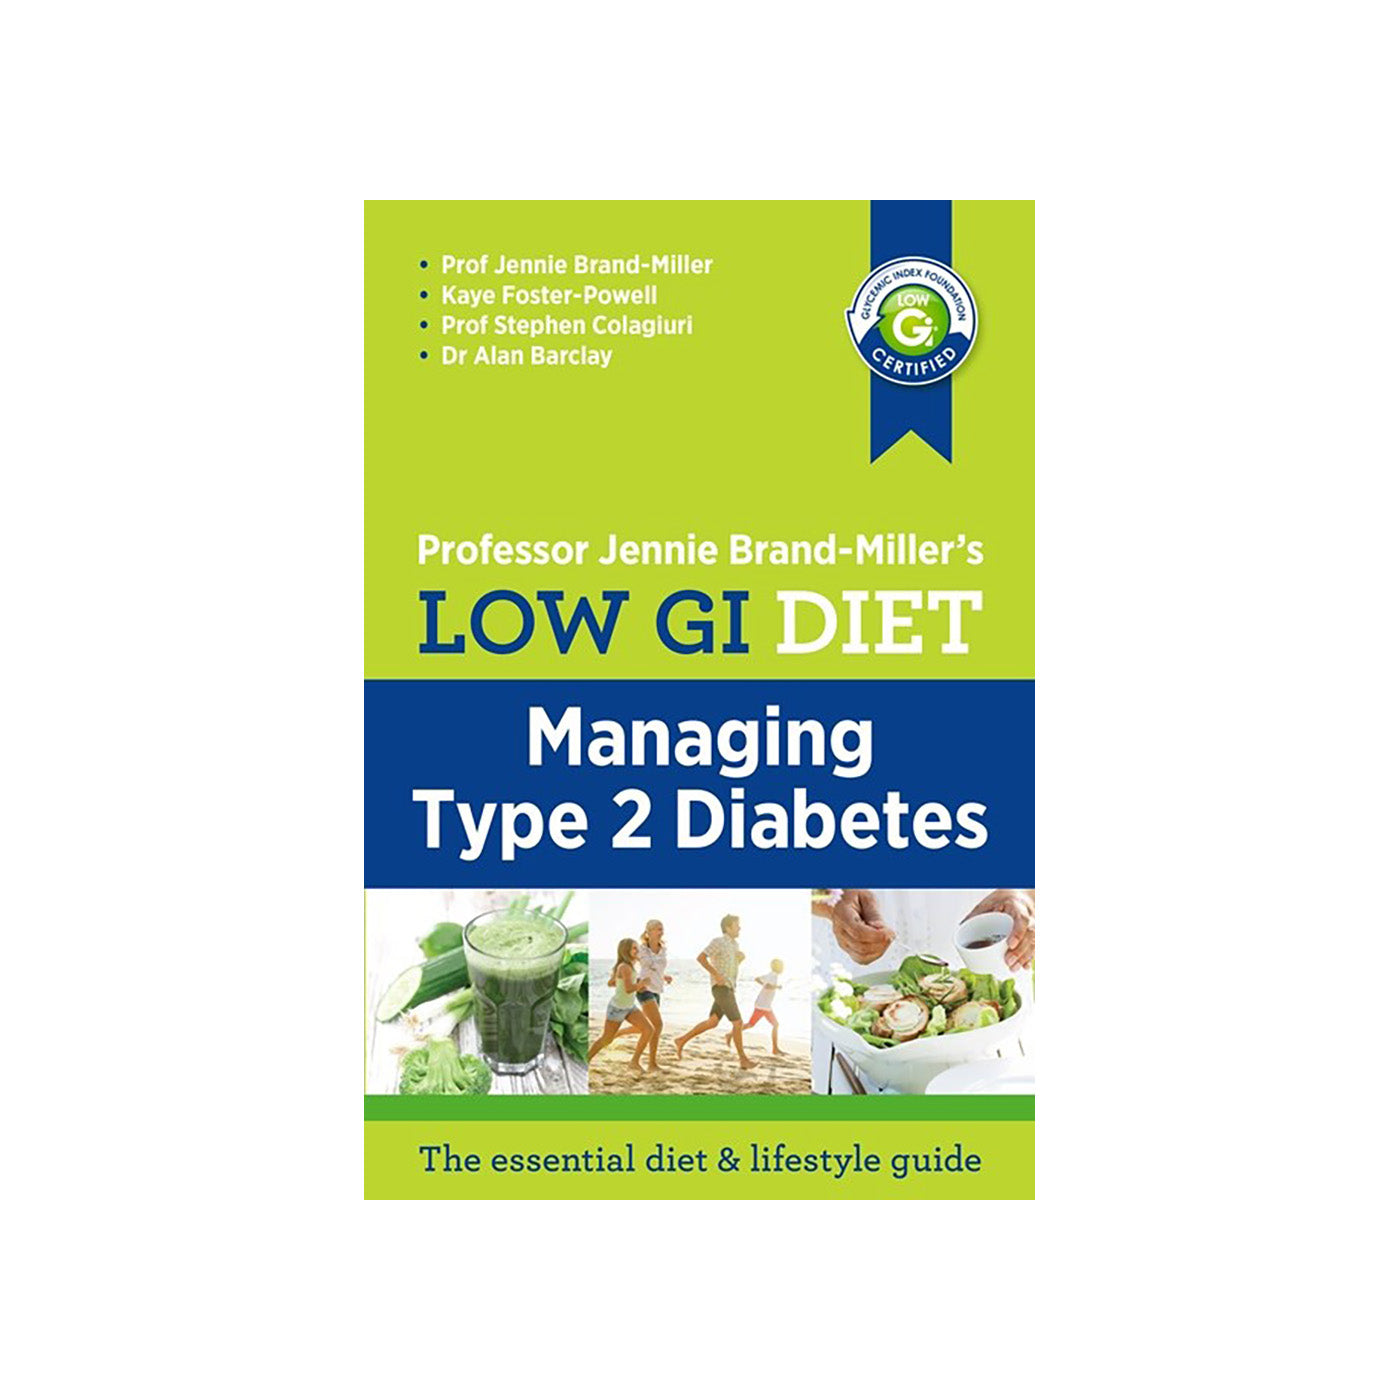 Low GI Diet Managing Type2 Diabetes